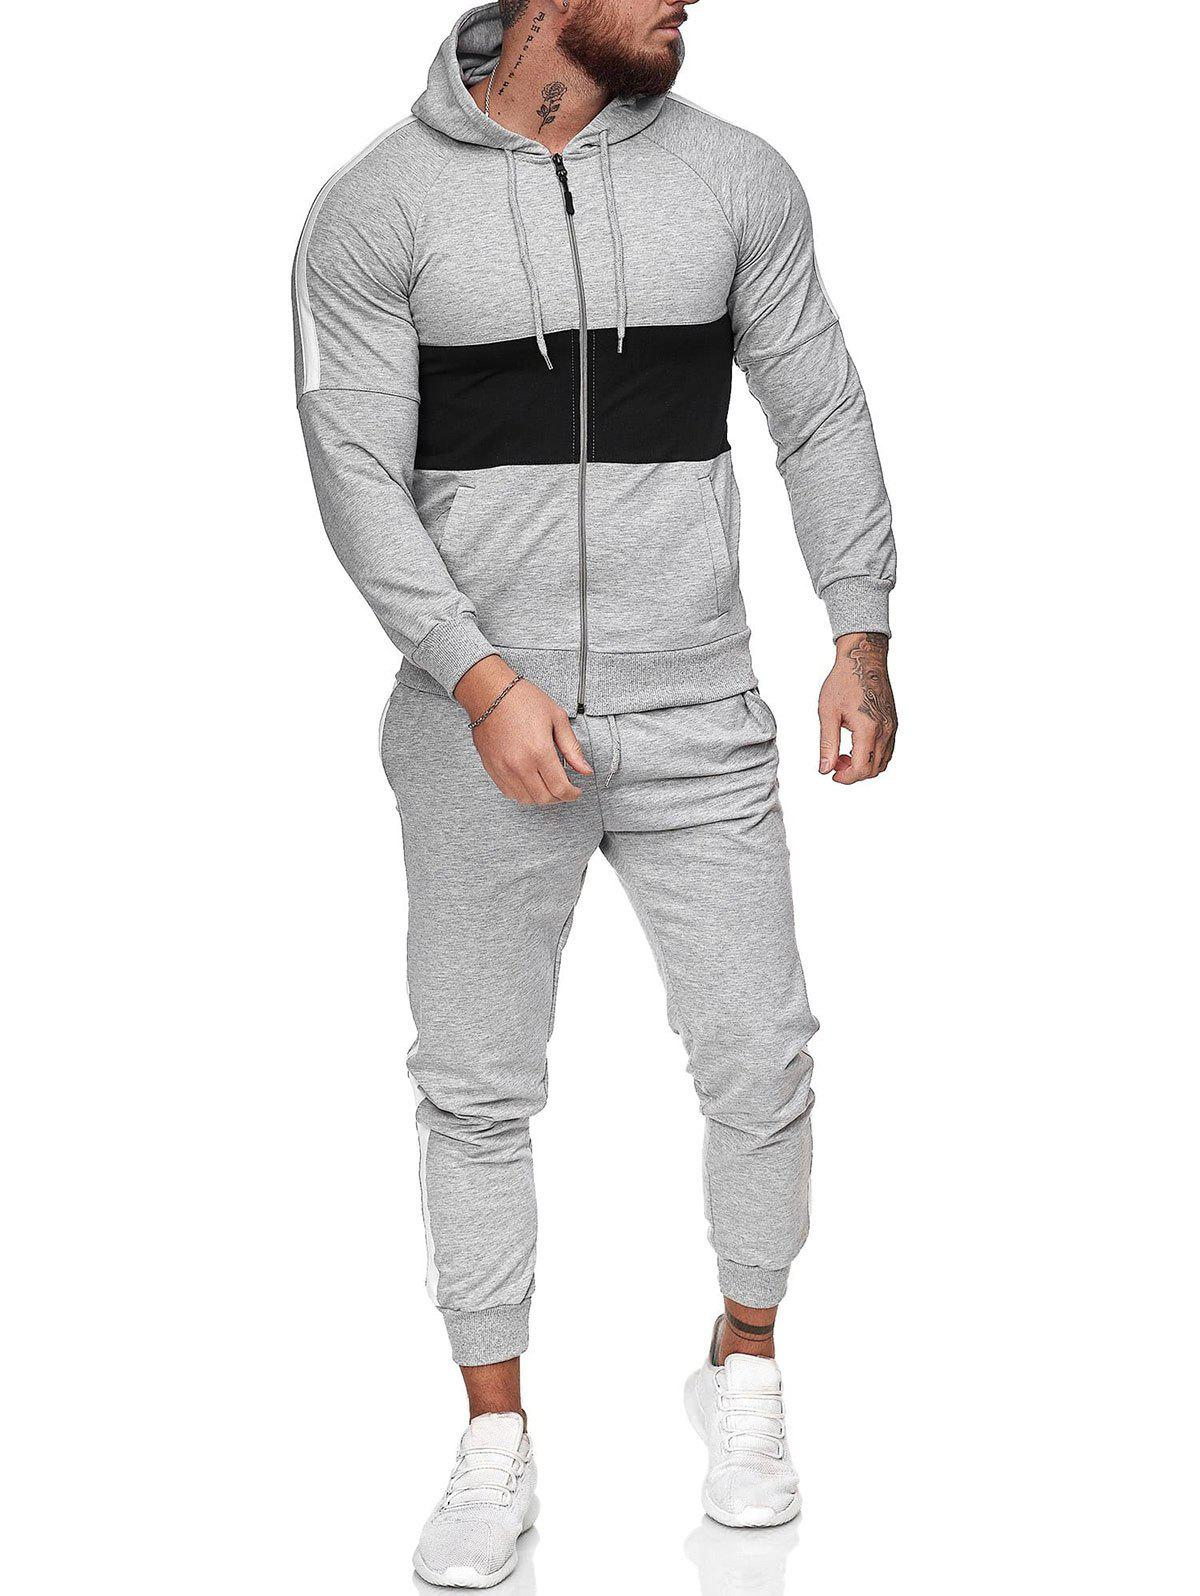 Trendy Contrast Zip Up Hoodie Jacket and Pants Two Piece Sports Set